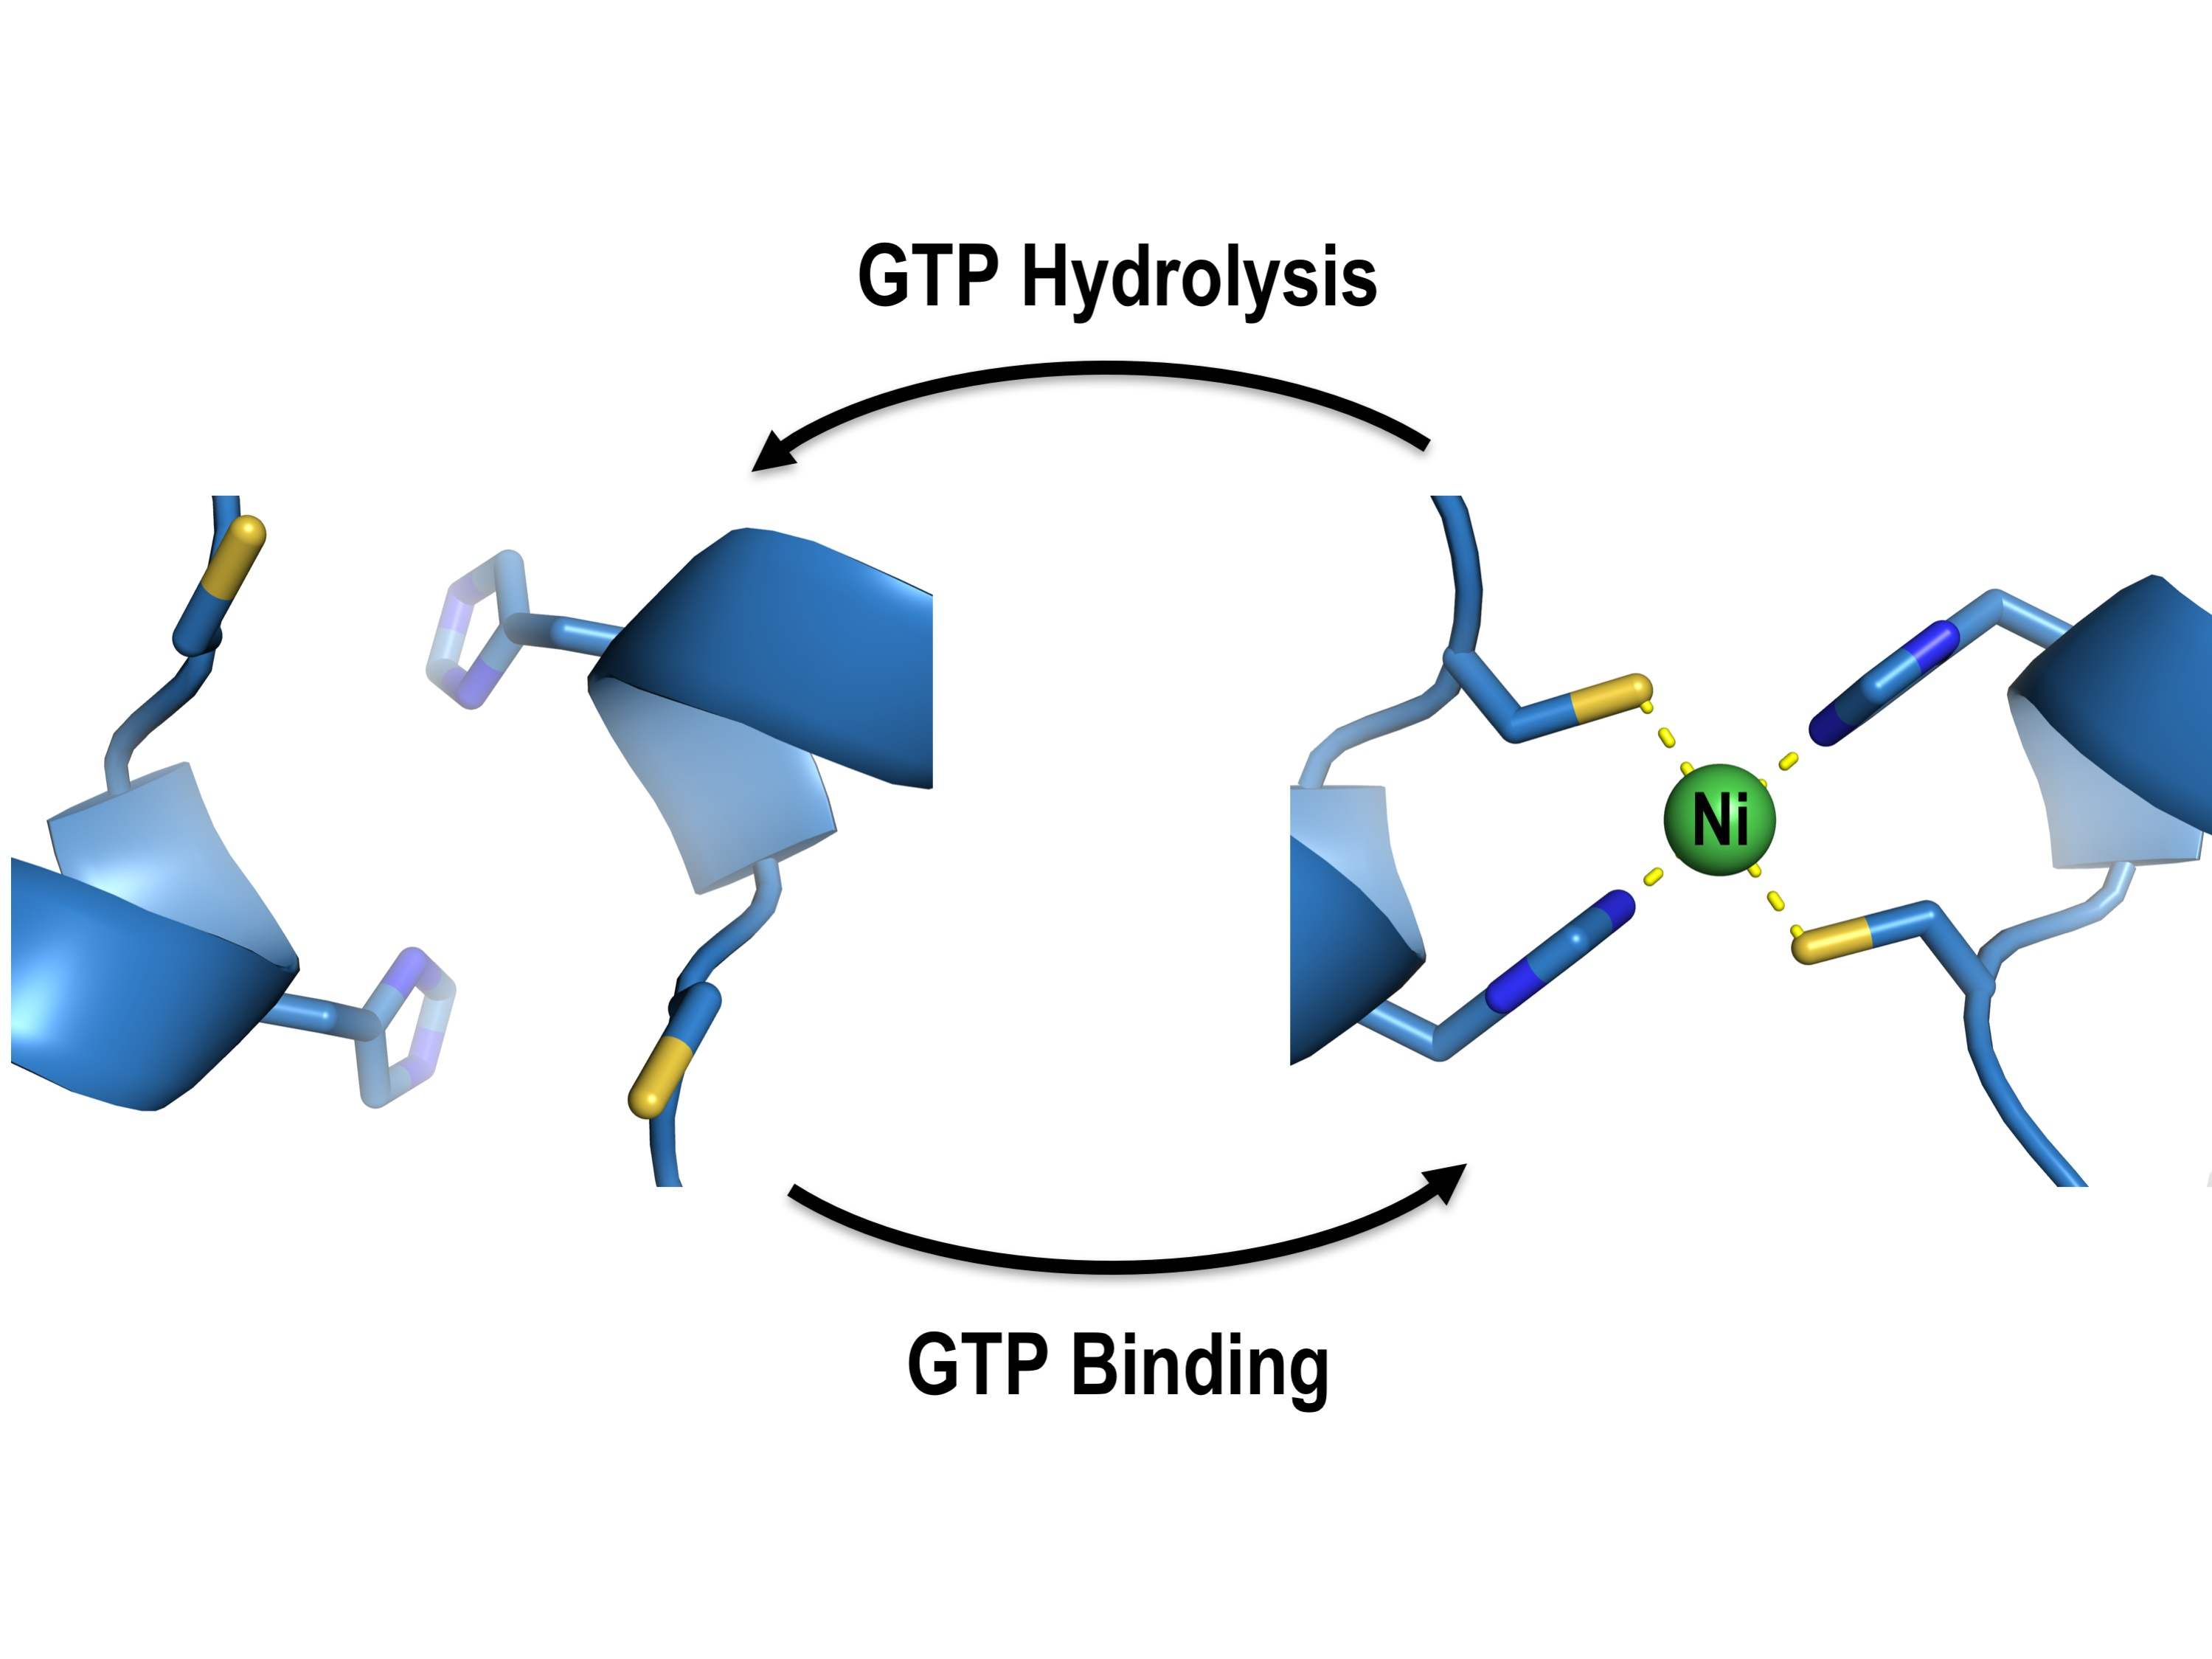 After GTP hydrolysis, UreG changes its shape and releases its bound nickel ions, activating the urease with the help of UreF/UreH.